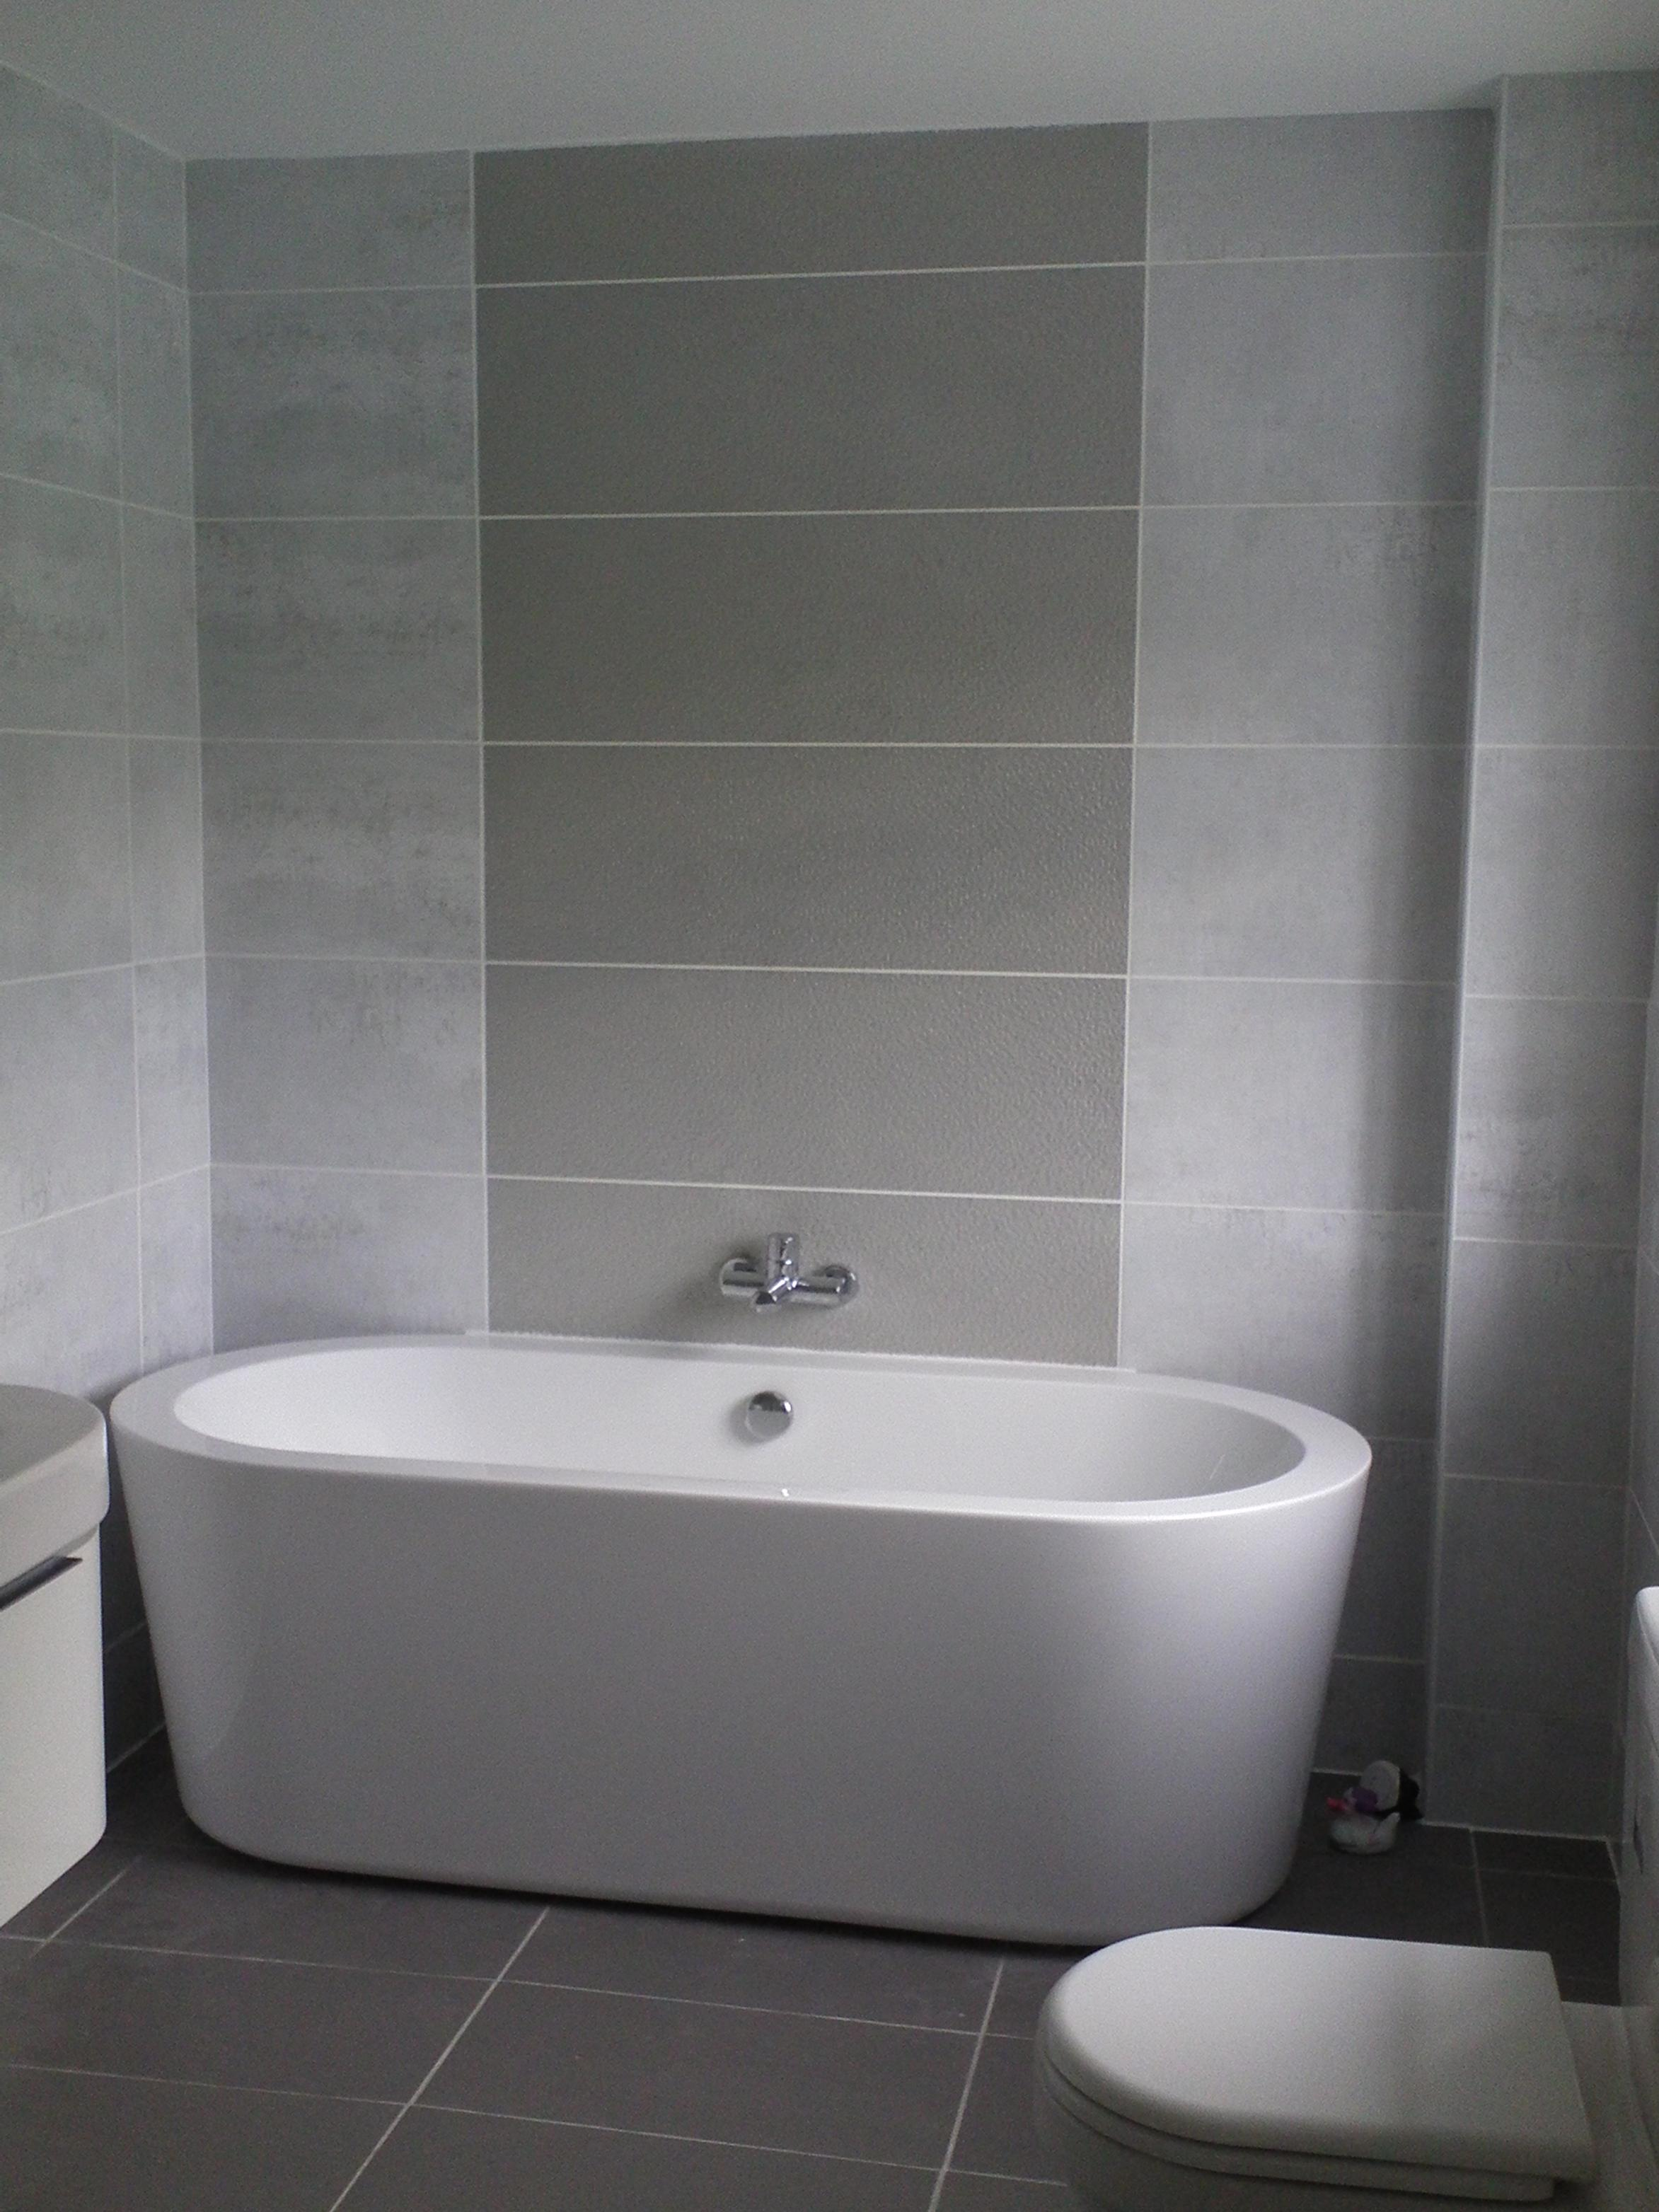 interior-white-grey-tiles-bathroom-wall-added-by-oval-white-bathtub-and-white-toilet-bowl-on-ceramics-flooring-breathtaking-ideas-of-white-bathroom-wall-tiles-shows-minimalist-design